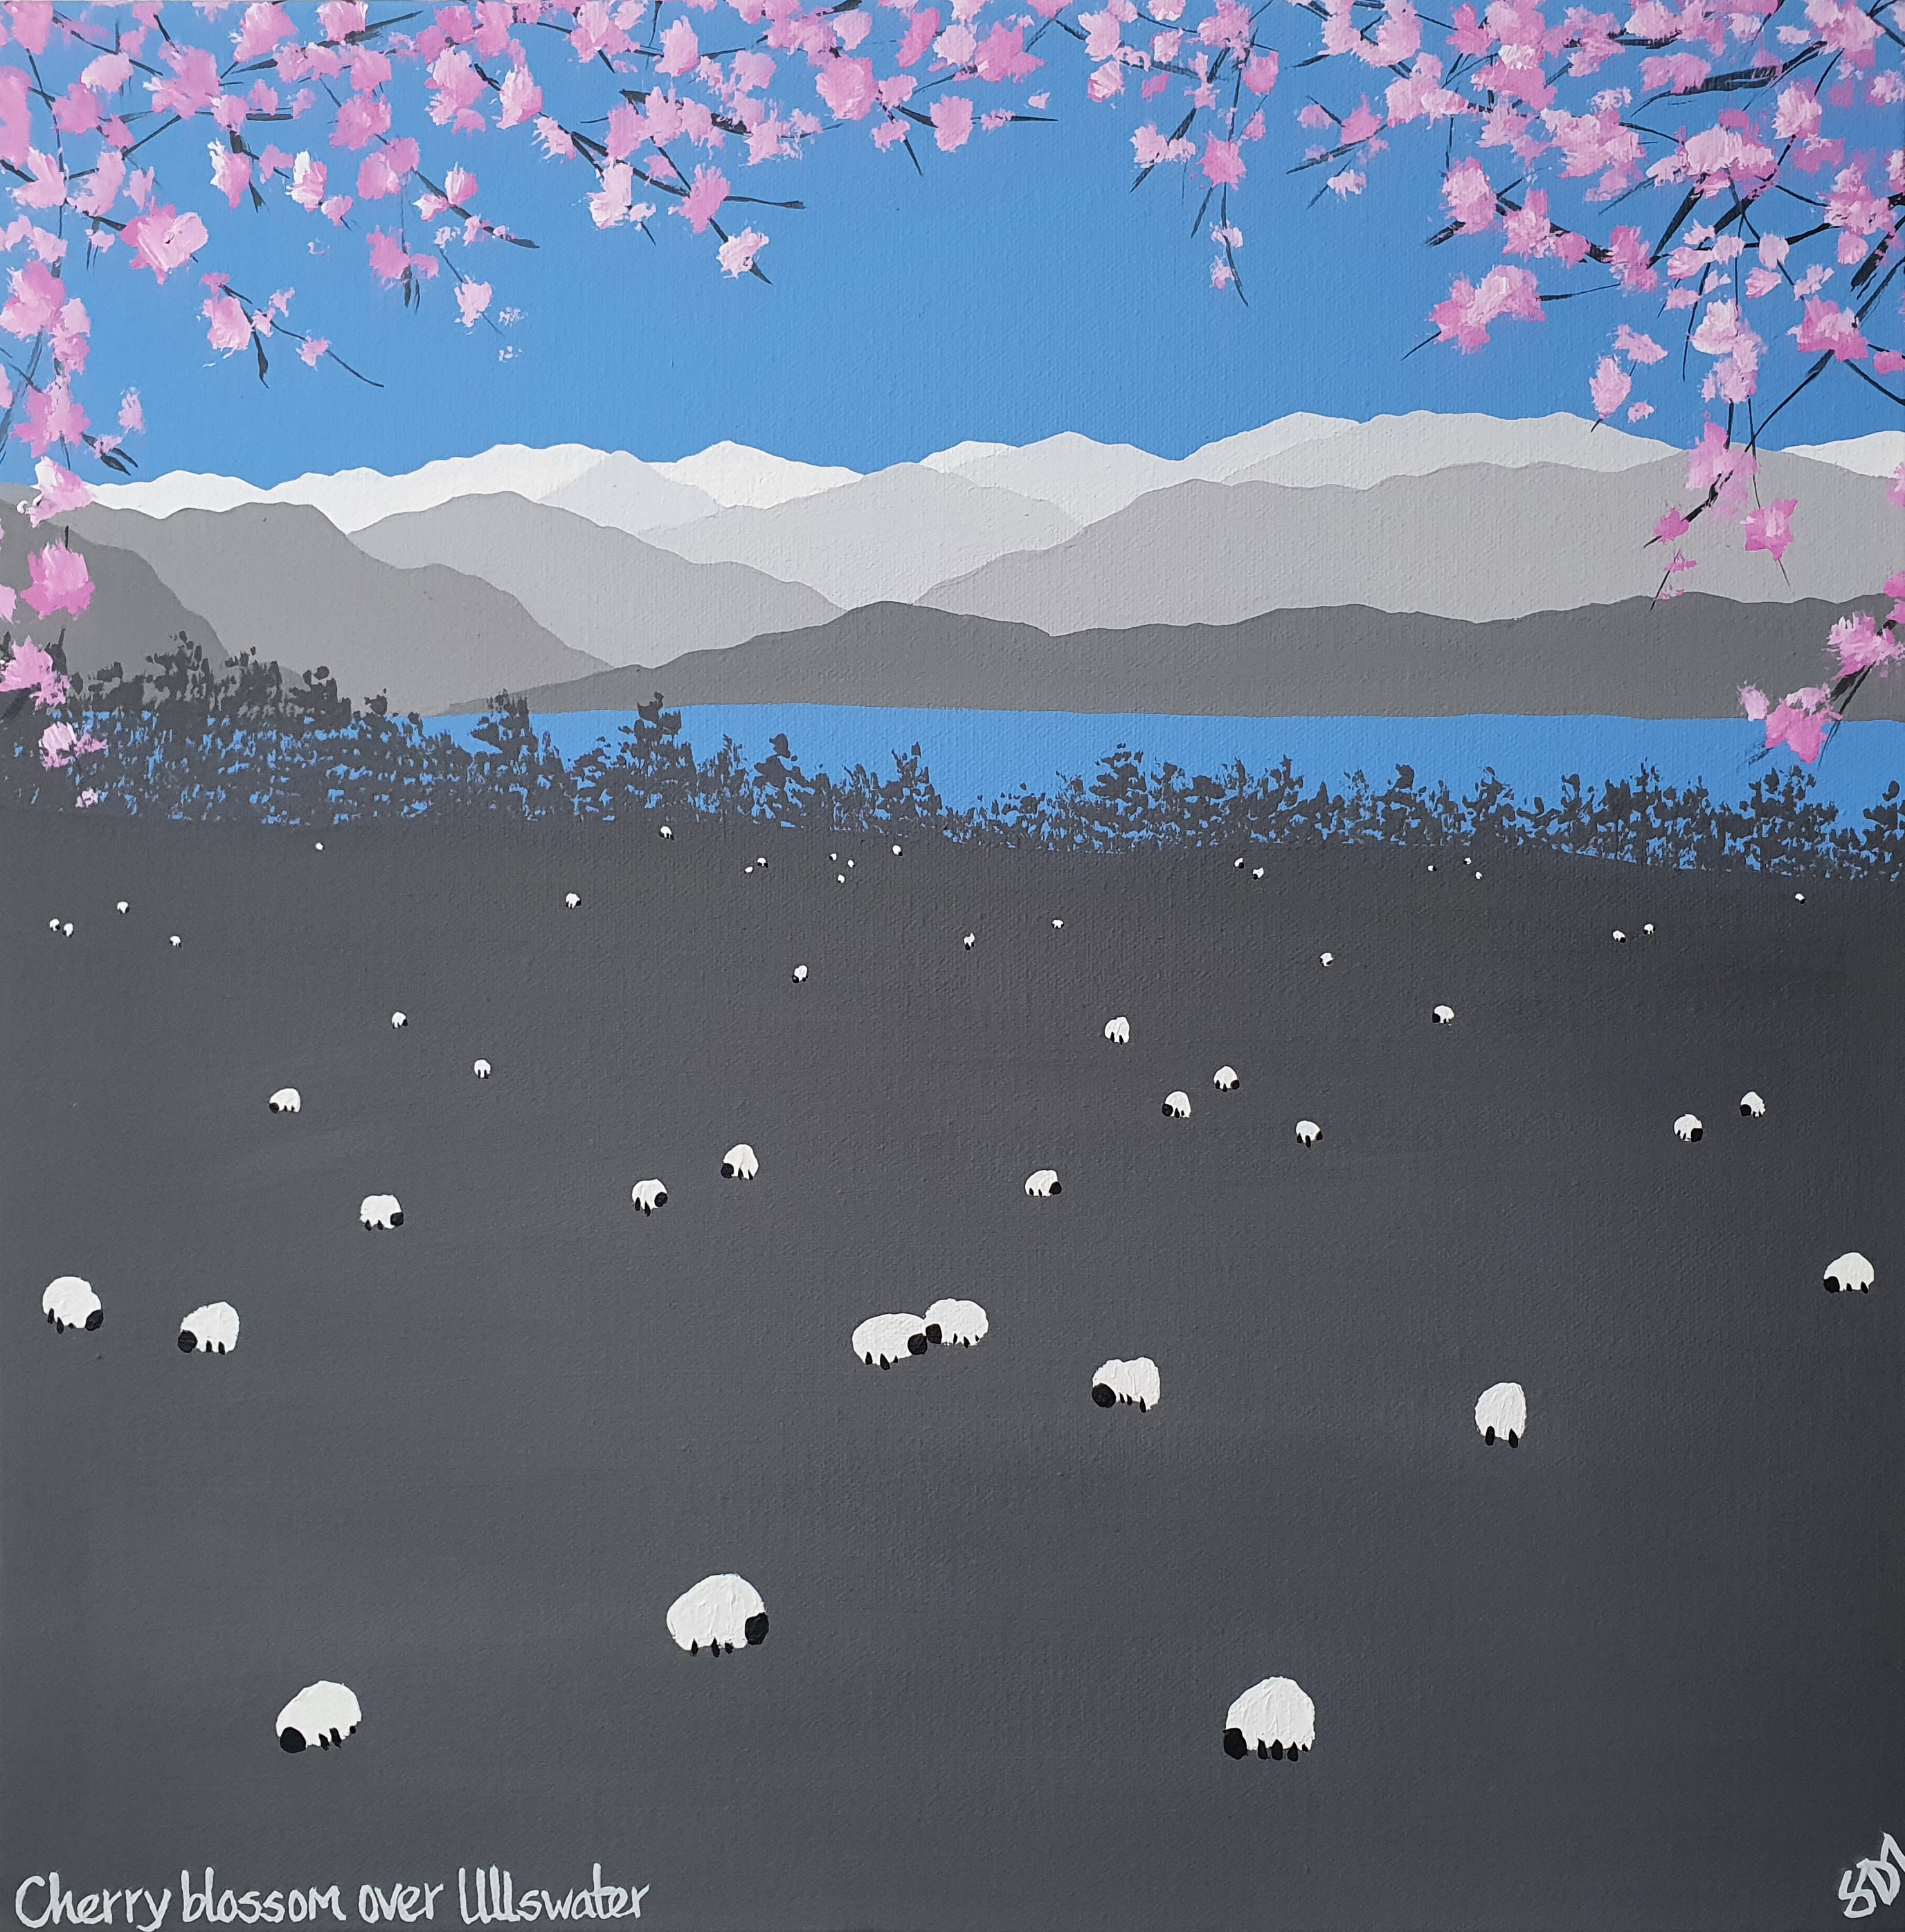 Cherry blossom over Ullswater